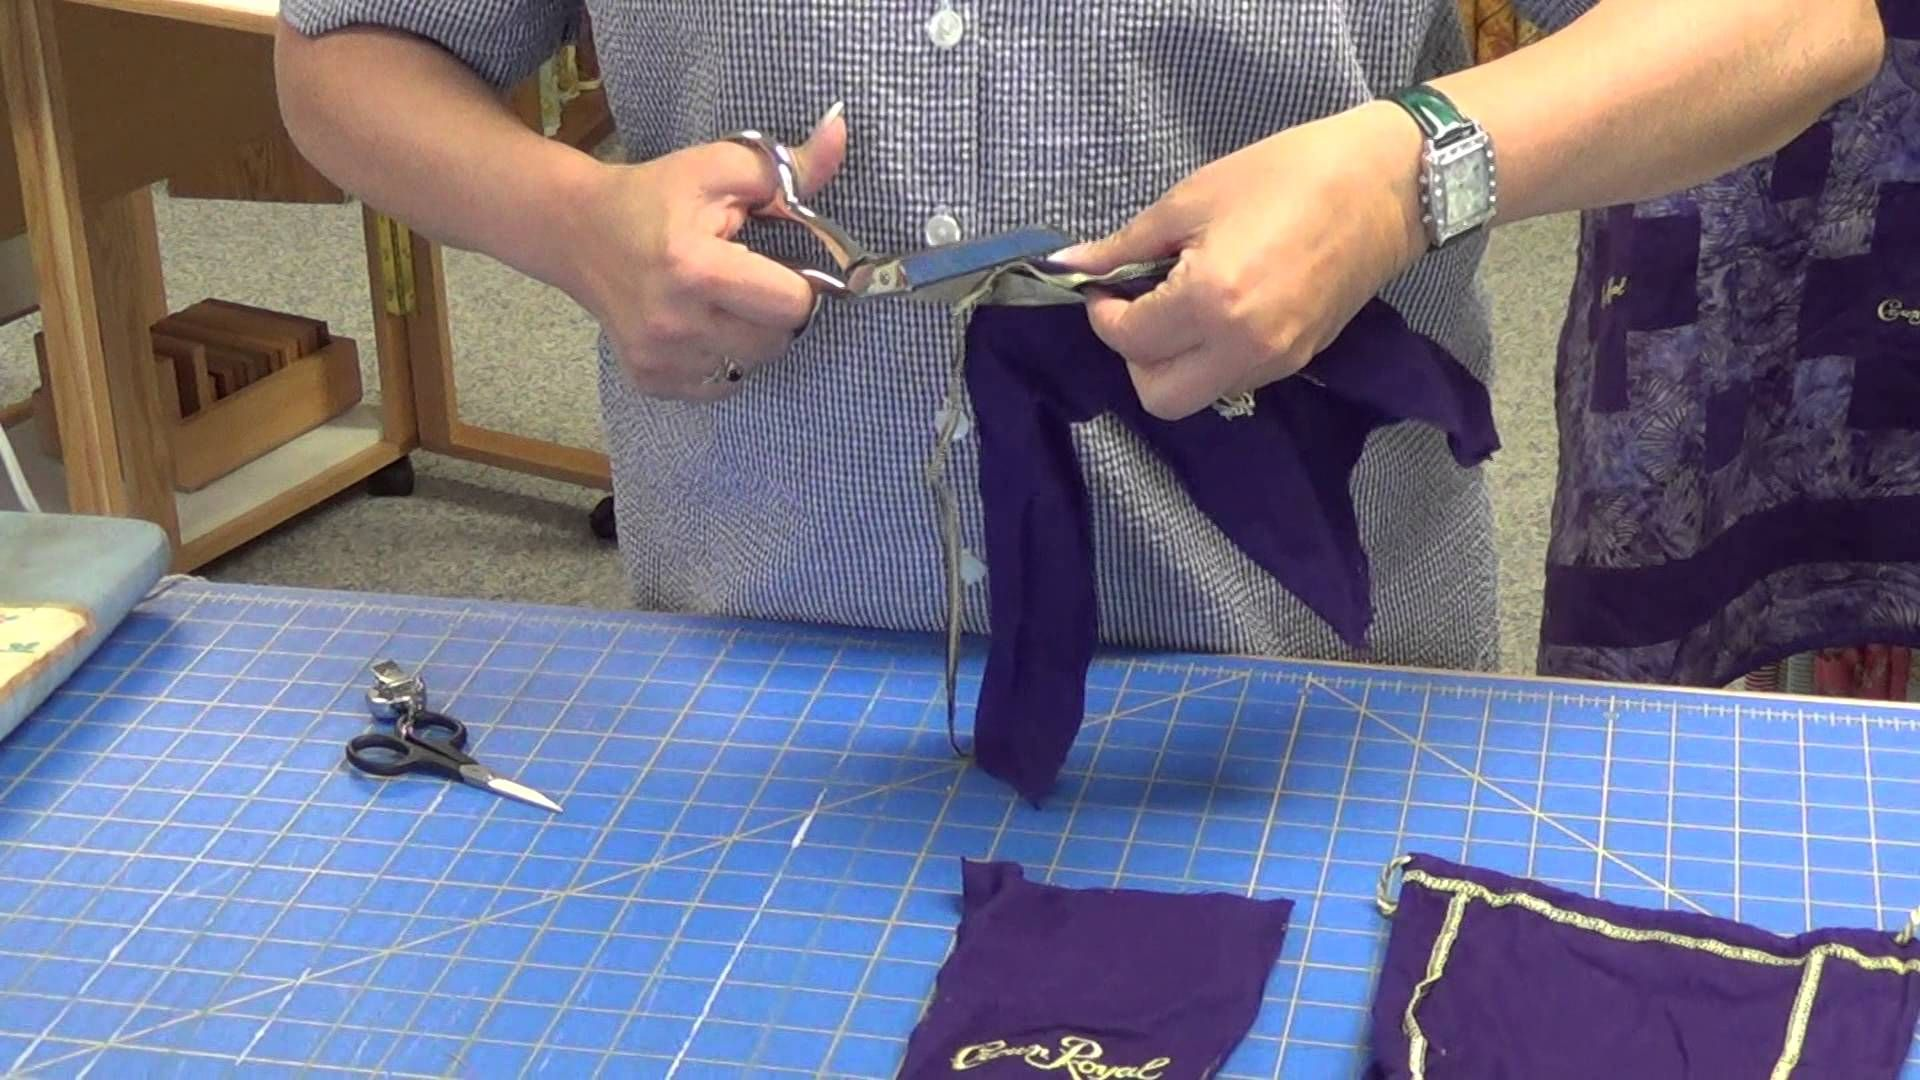 How to prep your crown royal bags for a quilt quilts how to prep your crown royal bags for a quilt jeuxipadfo Gallery